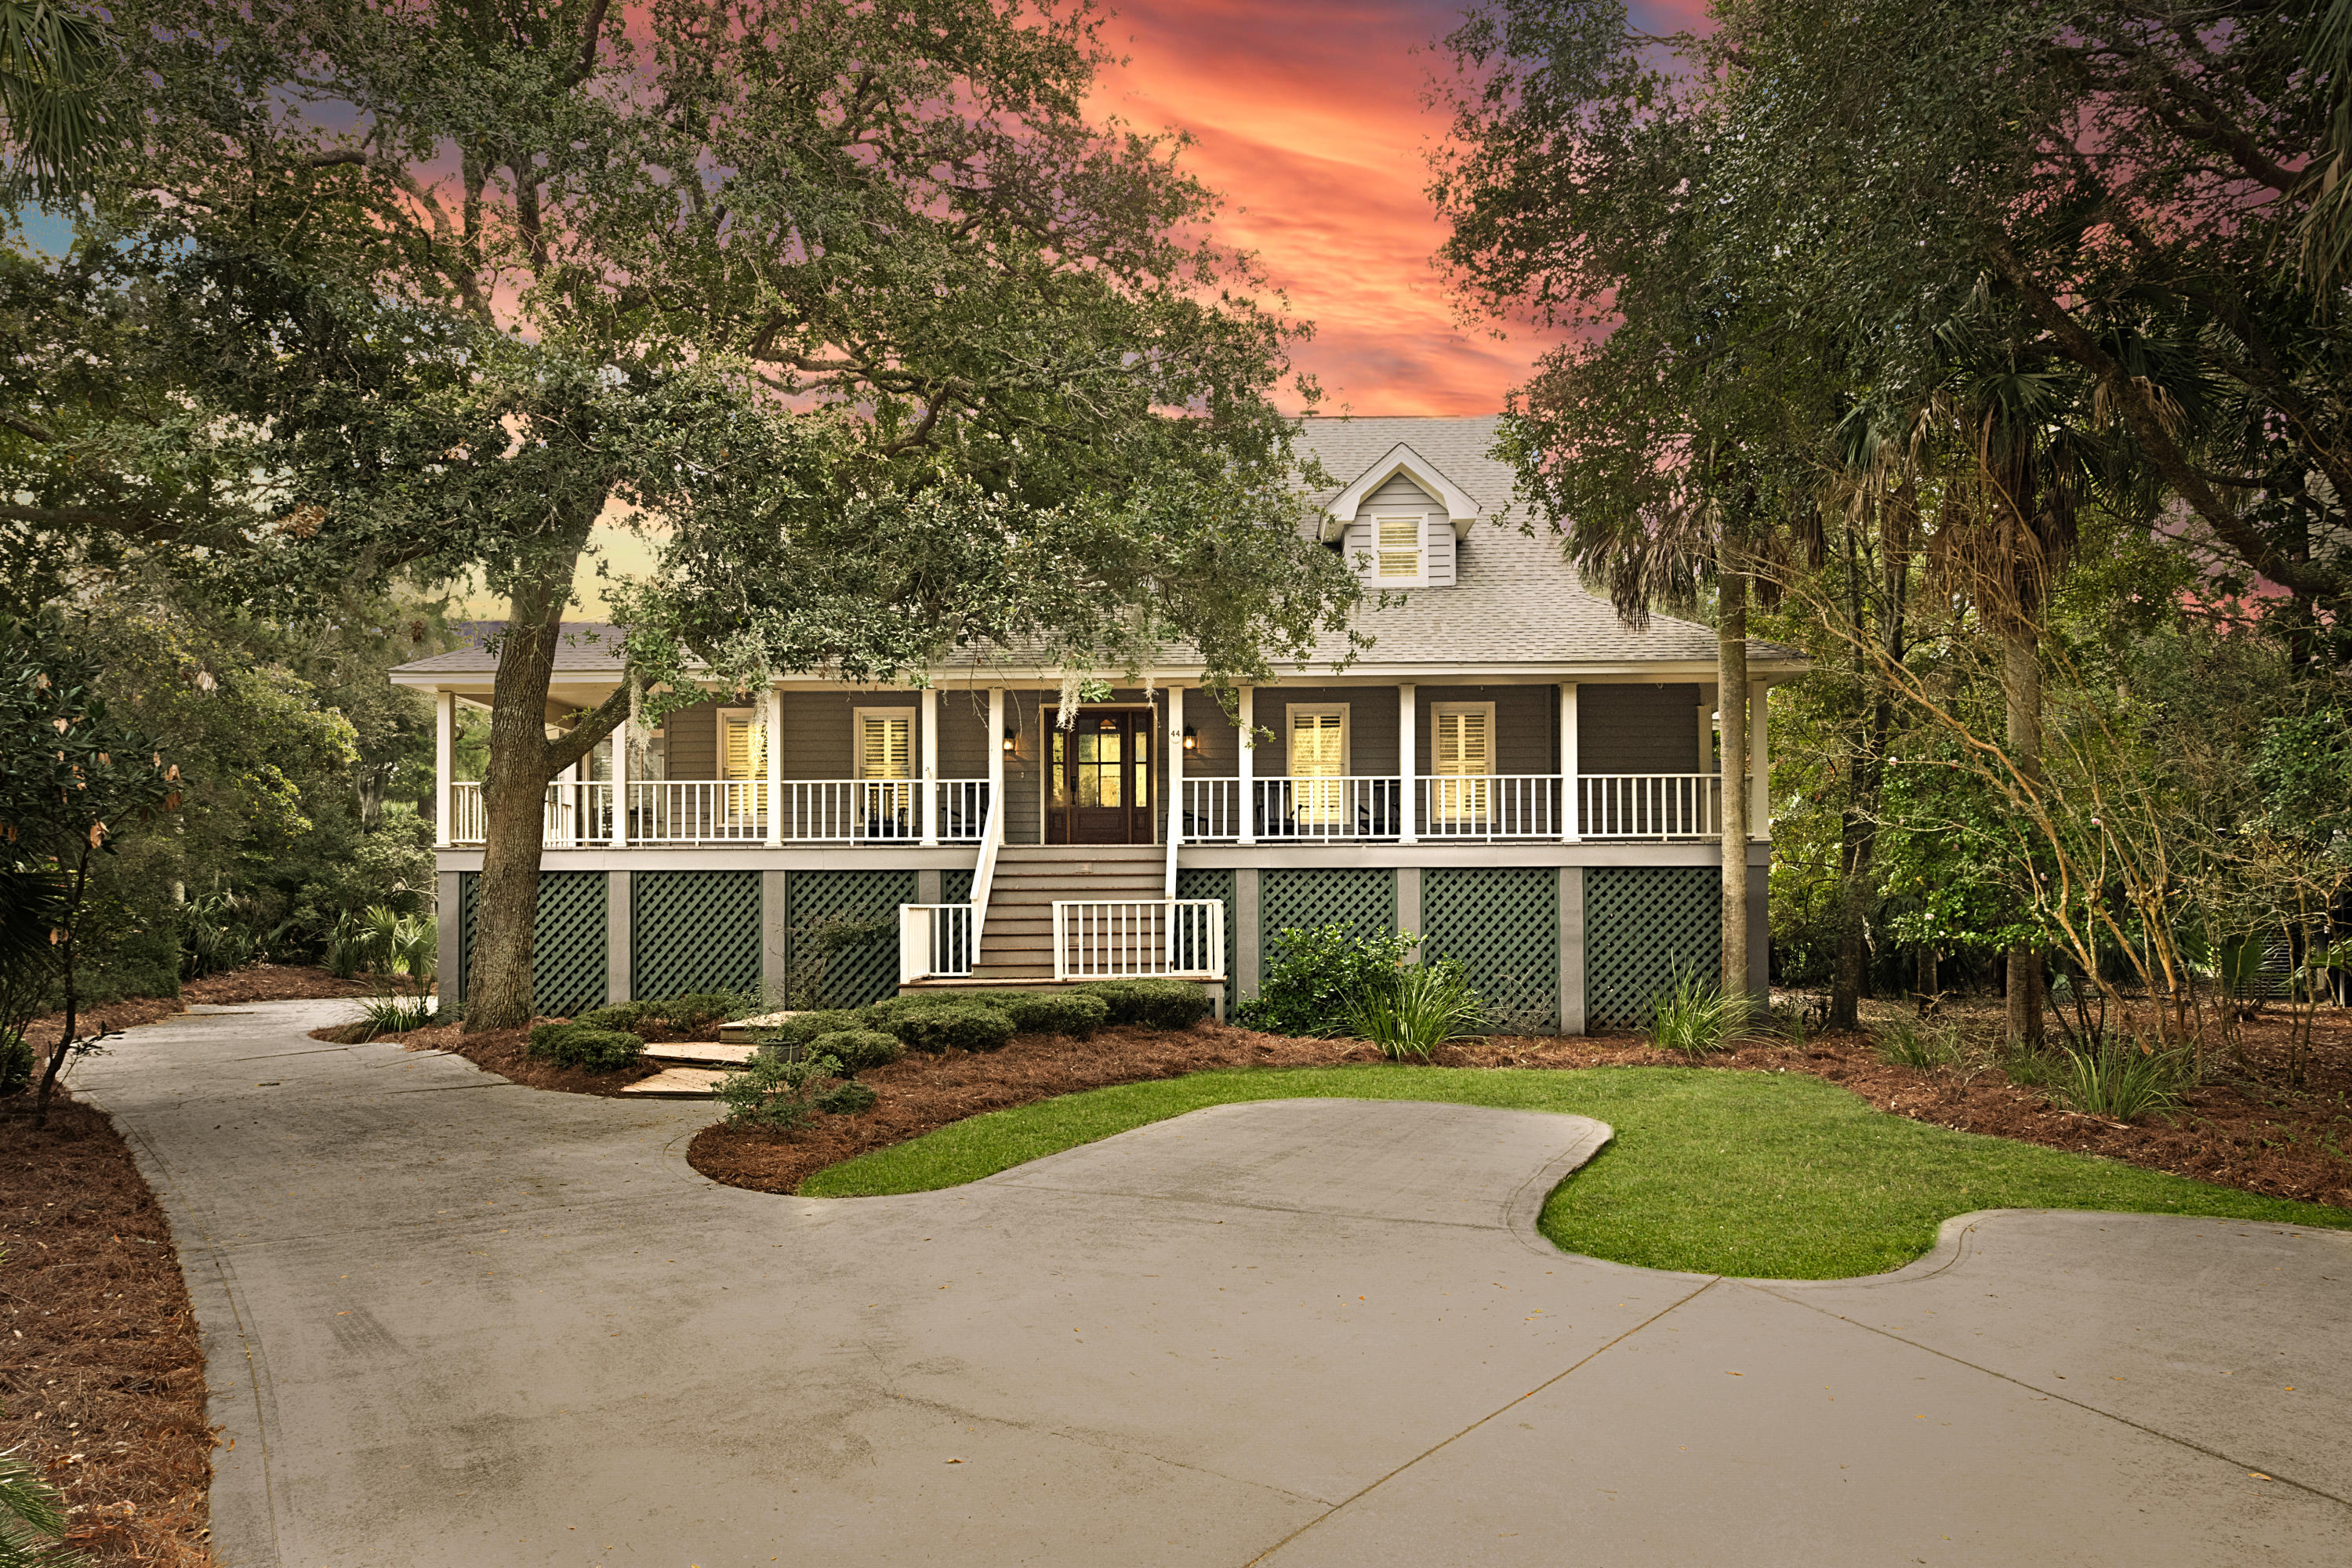 44 Cotton Hall Kiawah Island, SC 29455